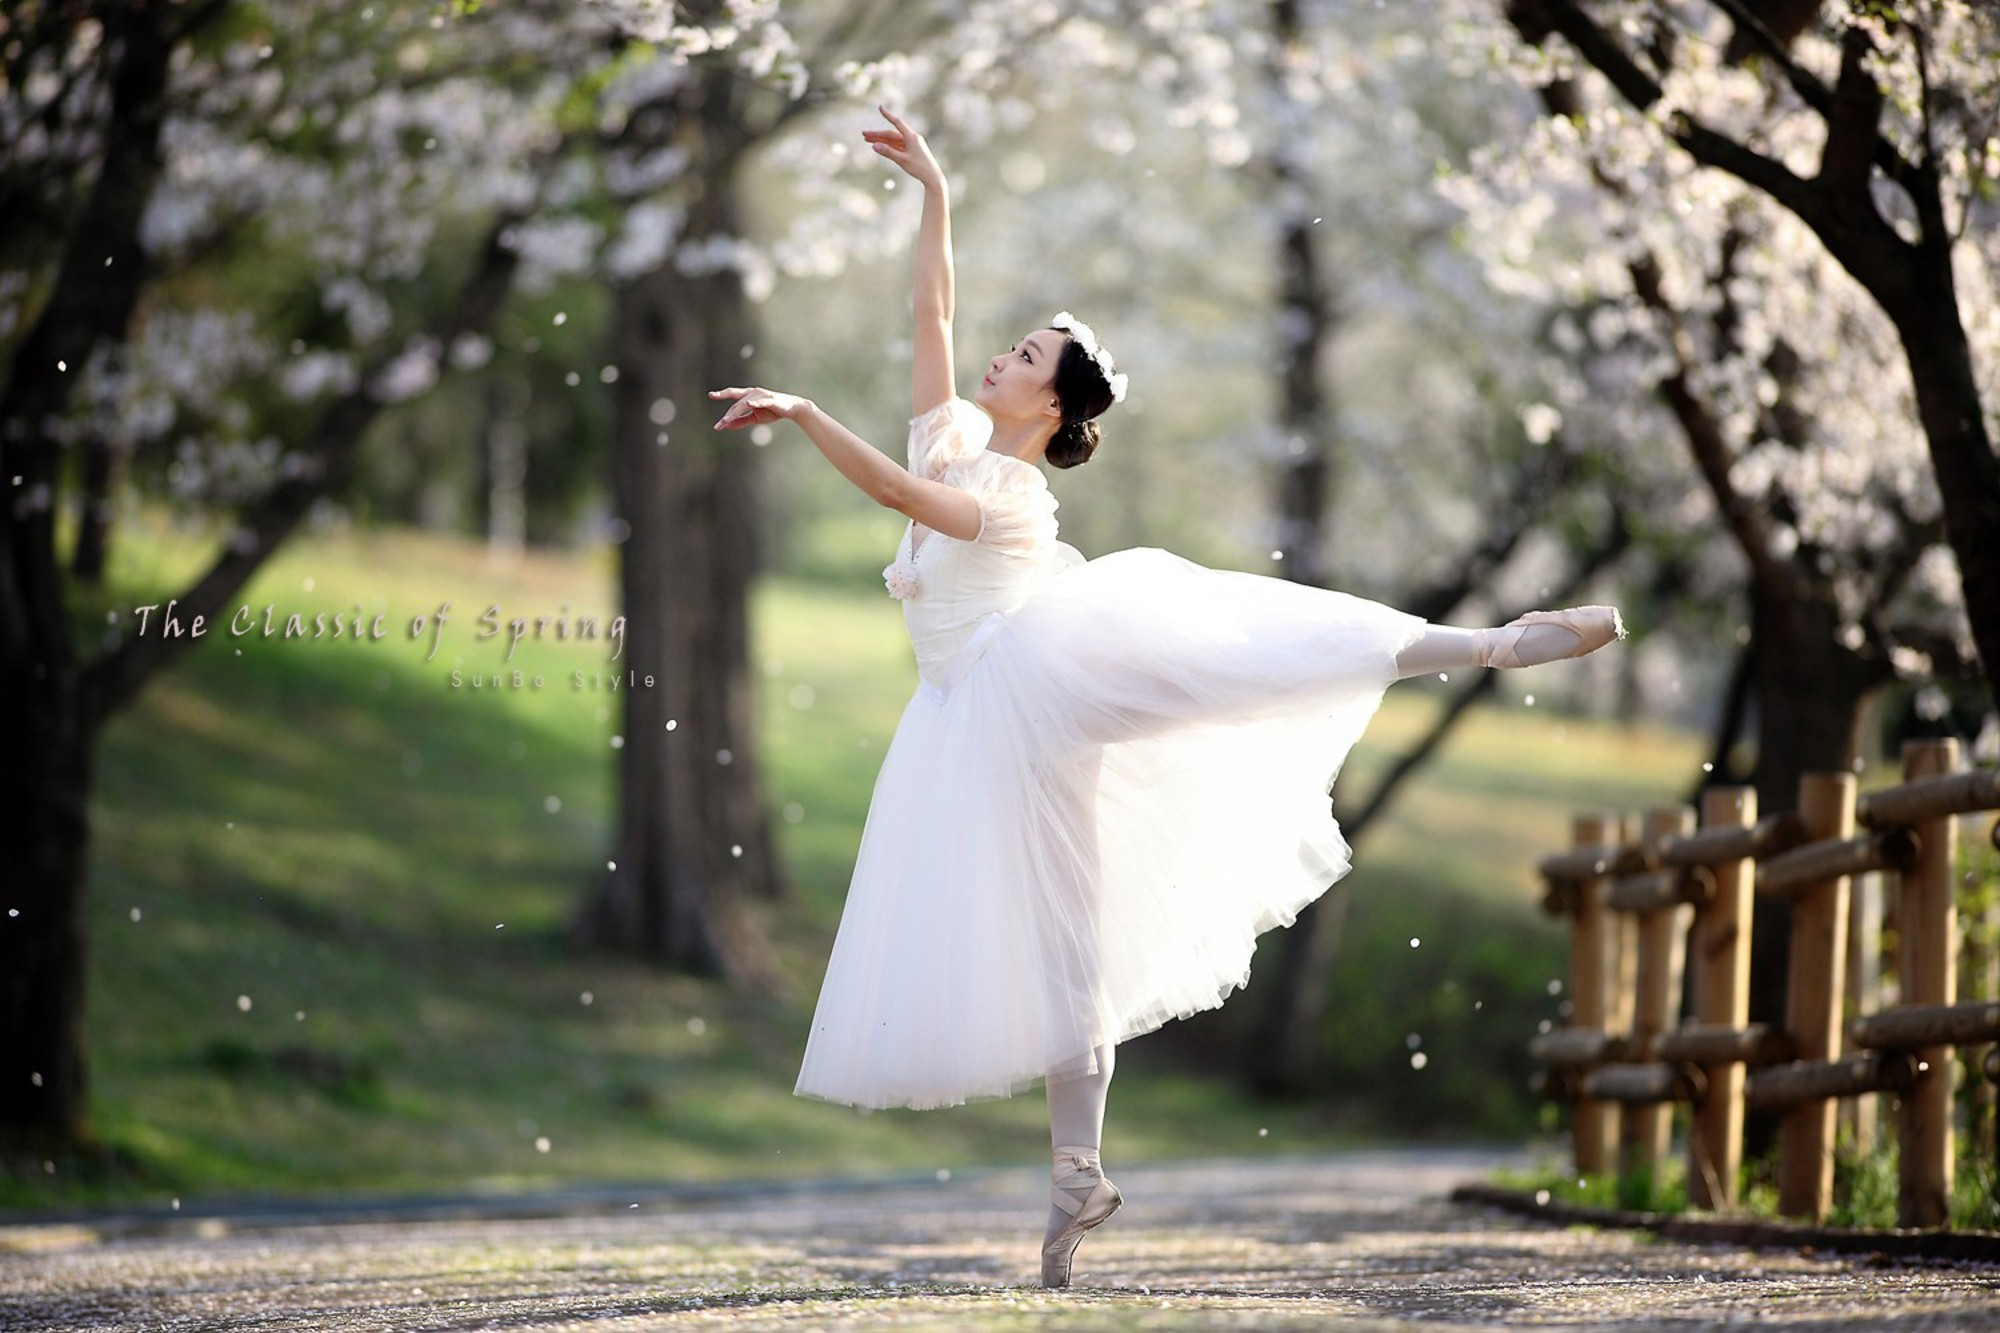 Landscapes spring (season) dancing classic art wallpaper